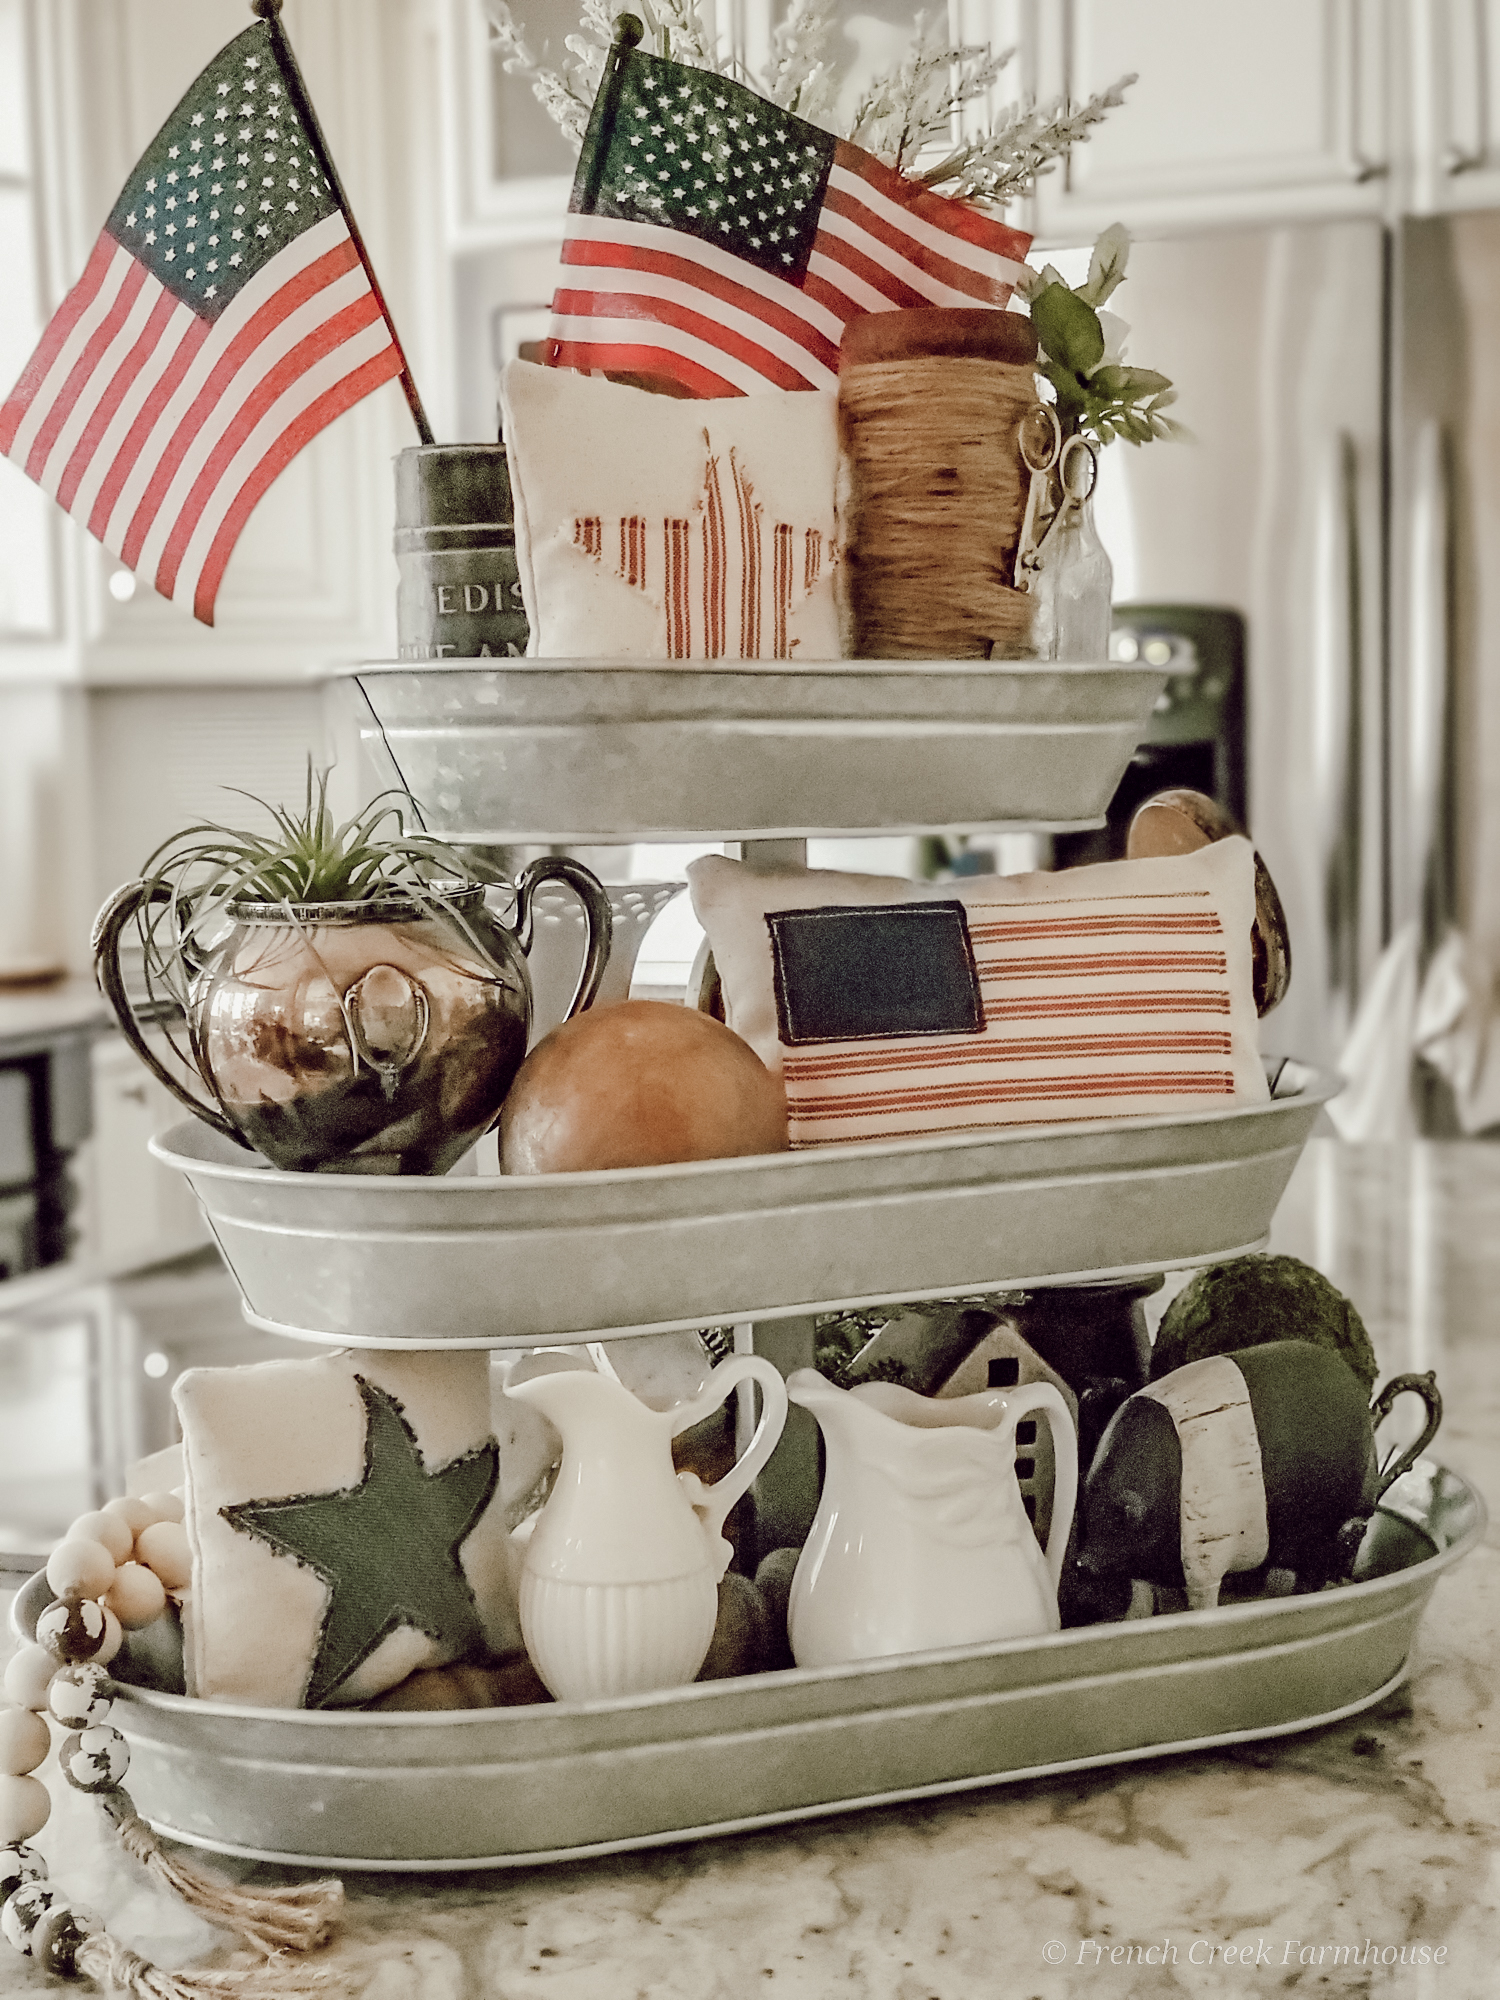 Patriotic themed tiered tray on kitchen island